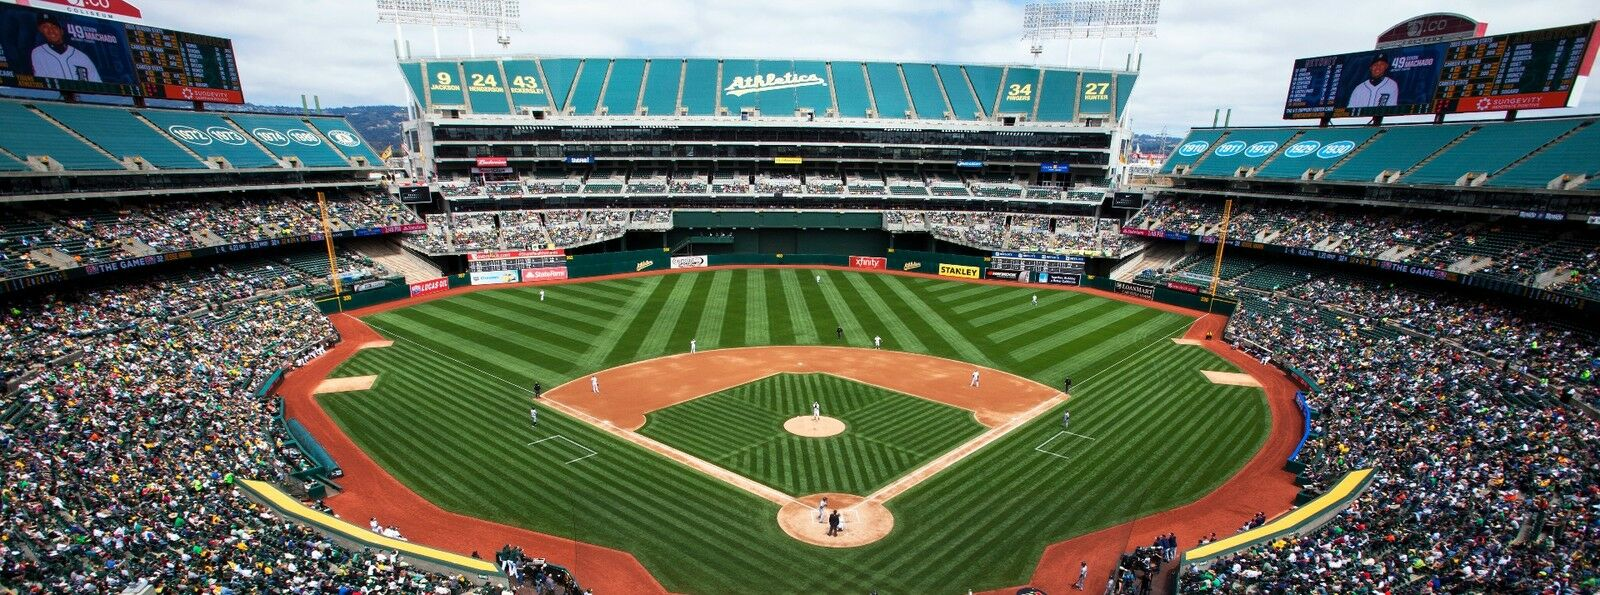 Atlanta Braves at Oakland Athletics